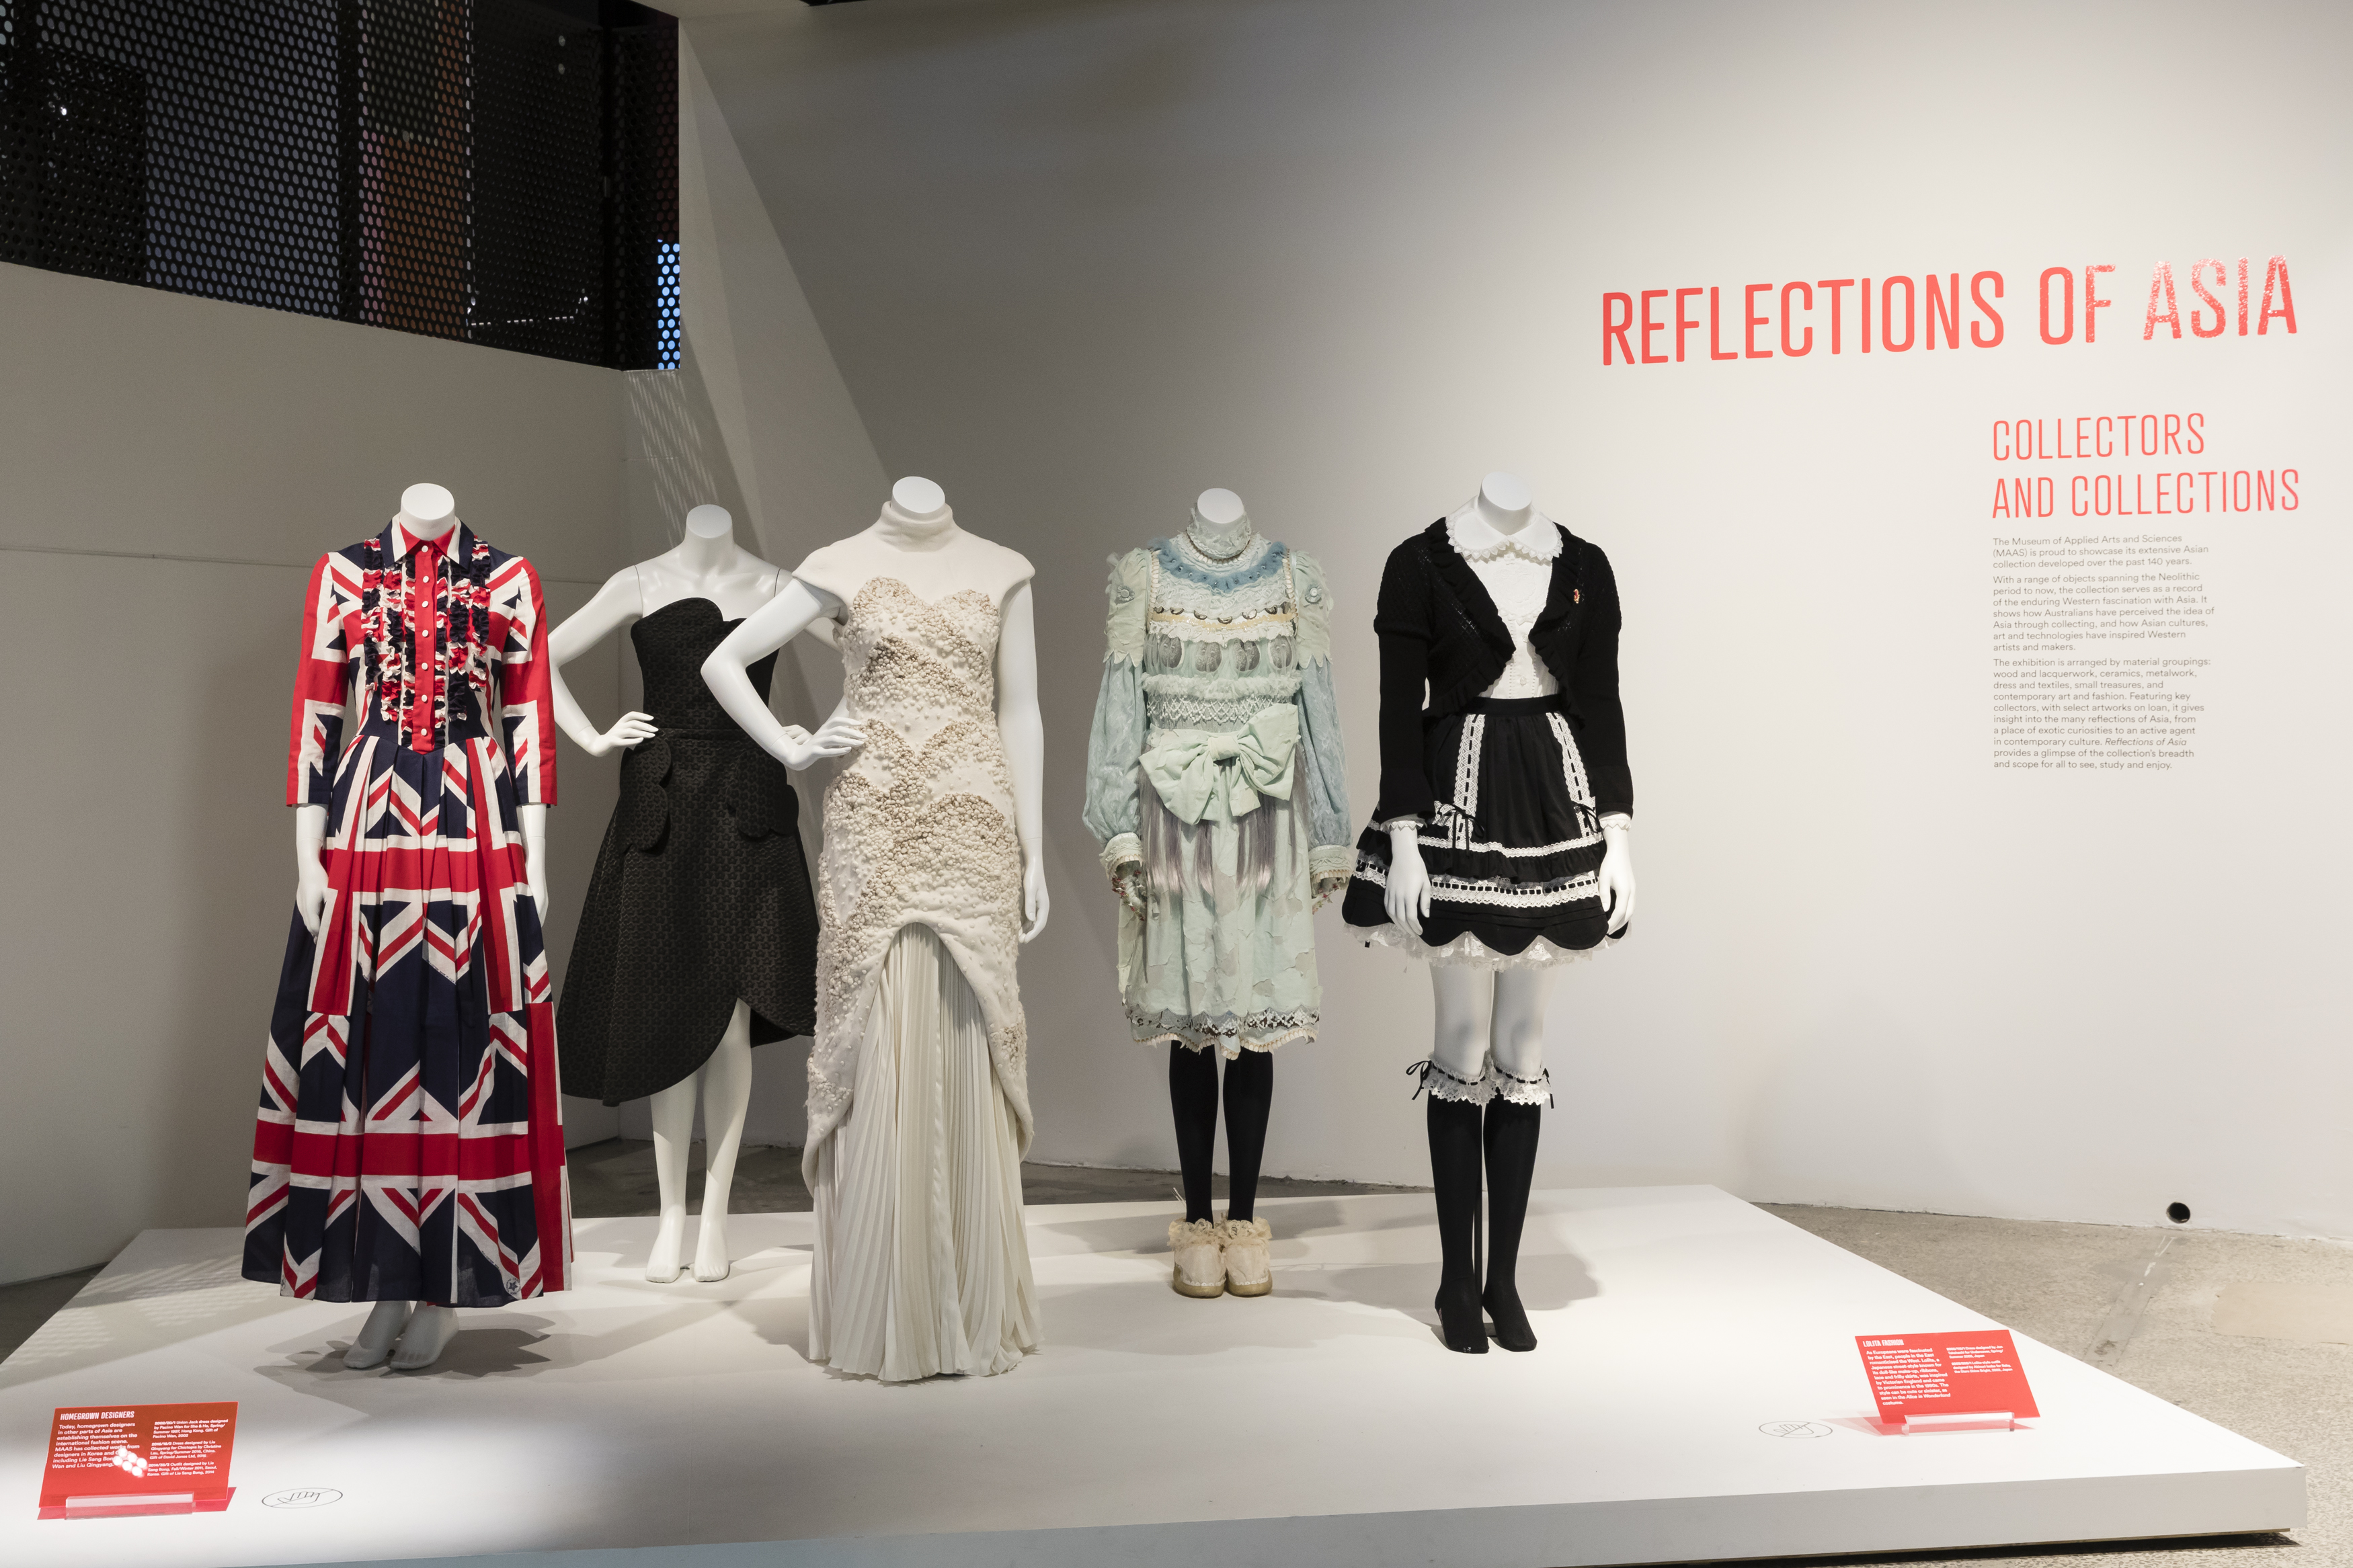 Exhibition view of an open display of contemporary fashion items on five mannequins. There are Victorian style outfits and a dress with Union Jack design.